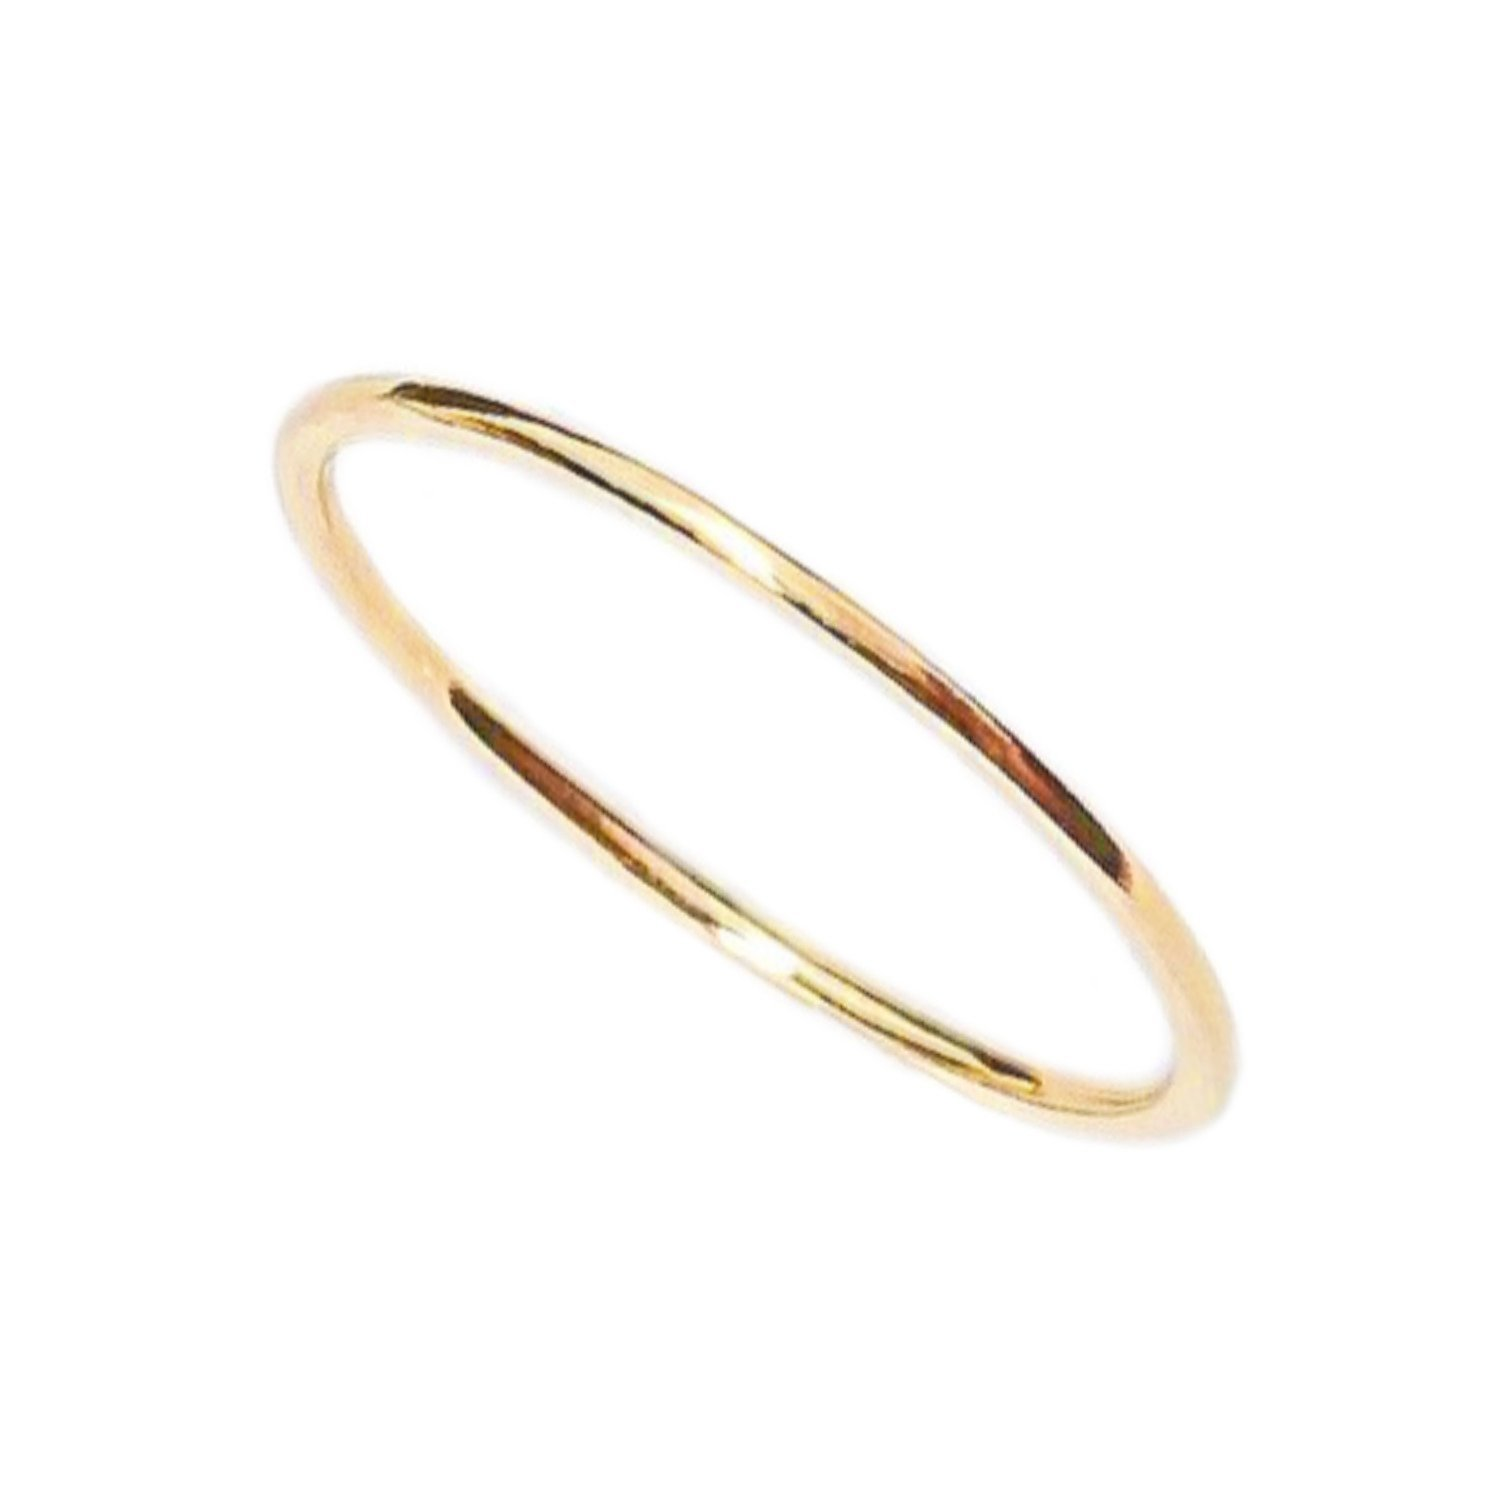 Very Thin 0.8mm Solid Yellow Gold Ring 18K Gift for precious one and your self